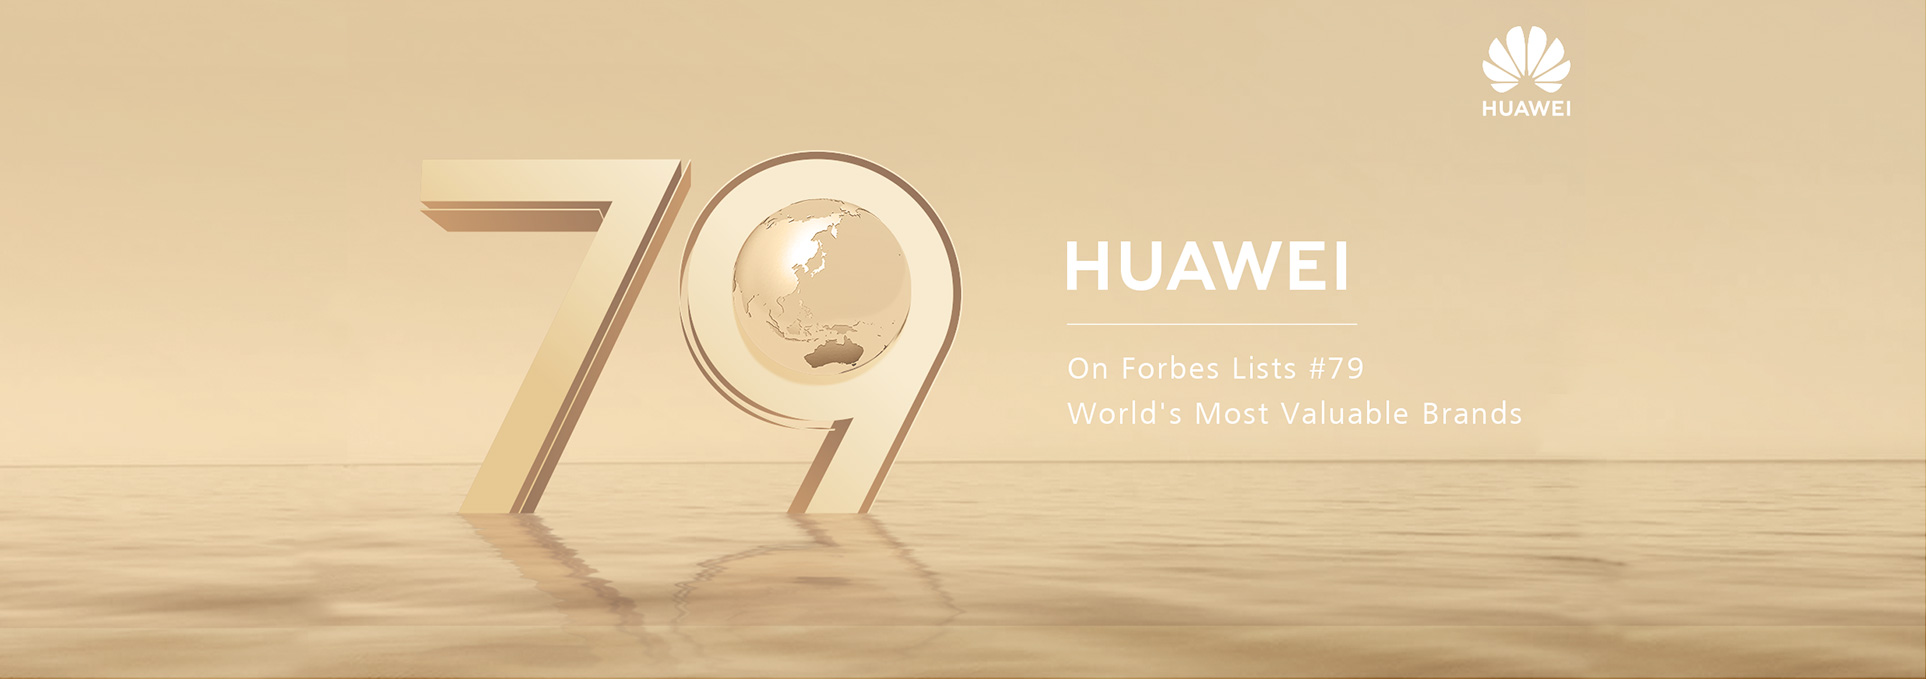 76c149148 انضم إلينا On Forbes Lists #79 World's Most Valuable Brands ...